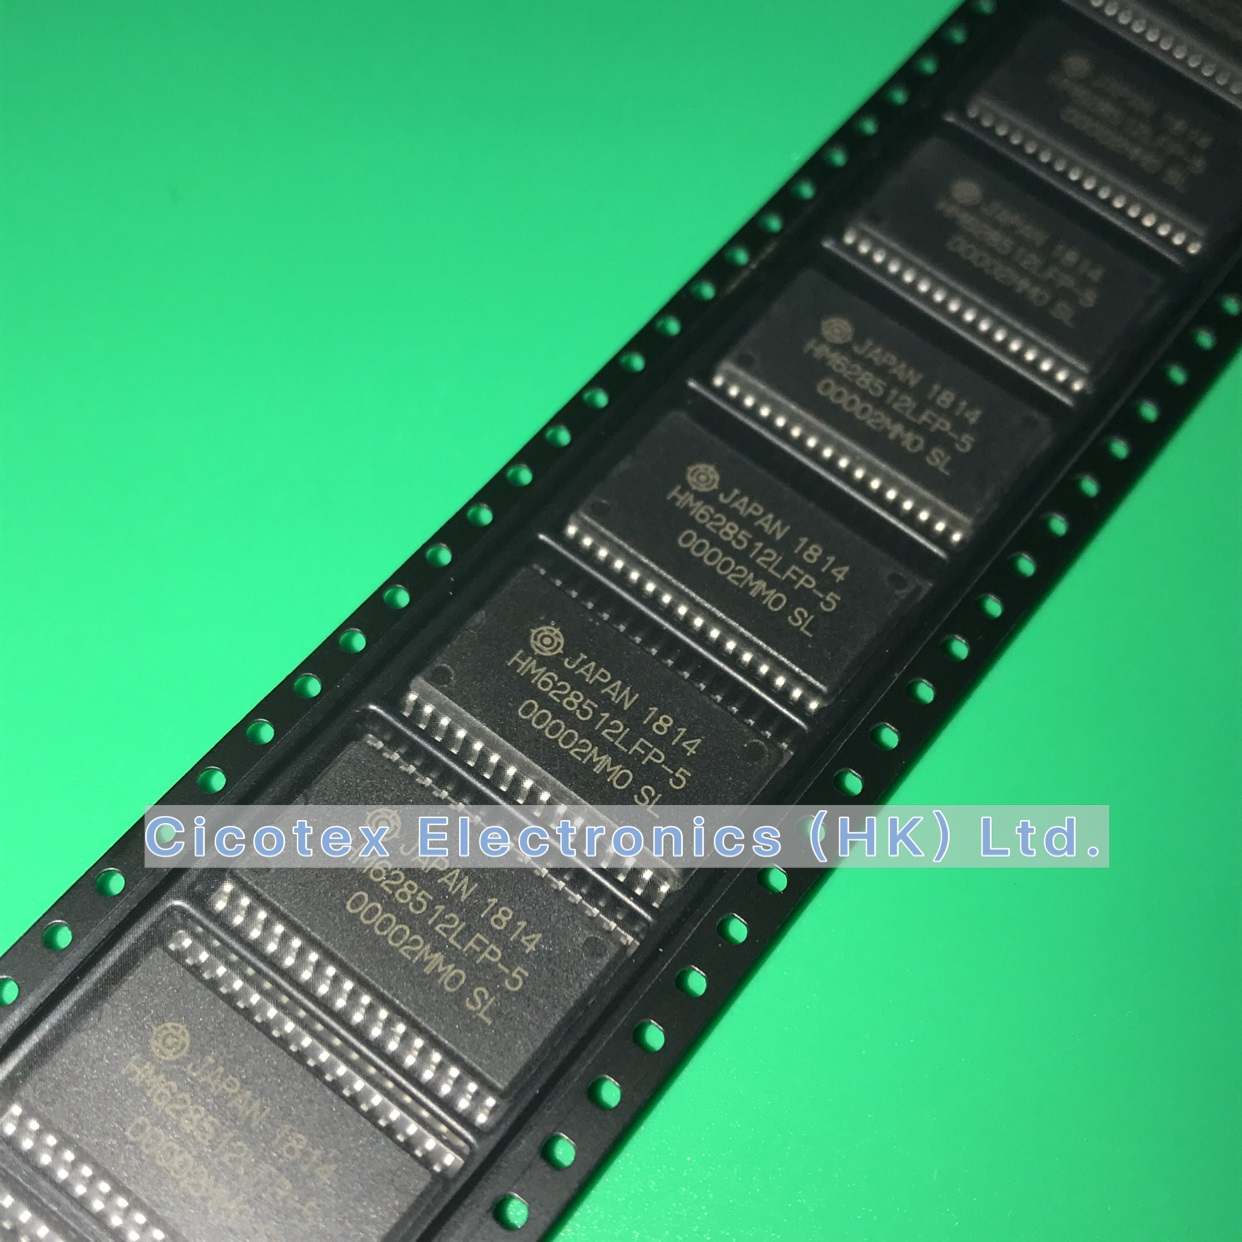 5pcs/lot HM628512LFP-5 SOP32 HM <font><b>628512</b></font> LFP-5 524288-word x 8-bit High Speed CMOS Static RAM HM628512LFP5 image